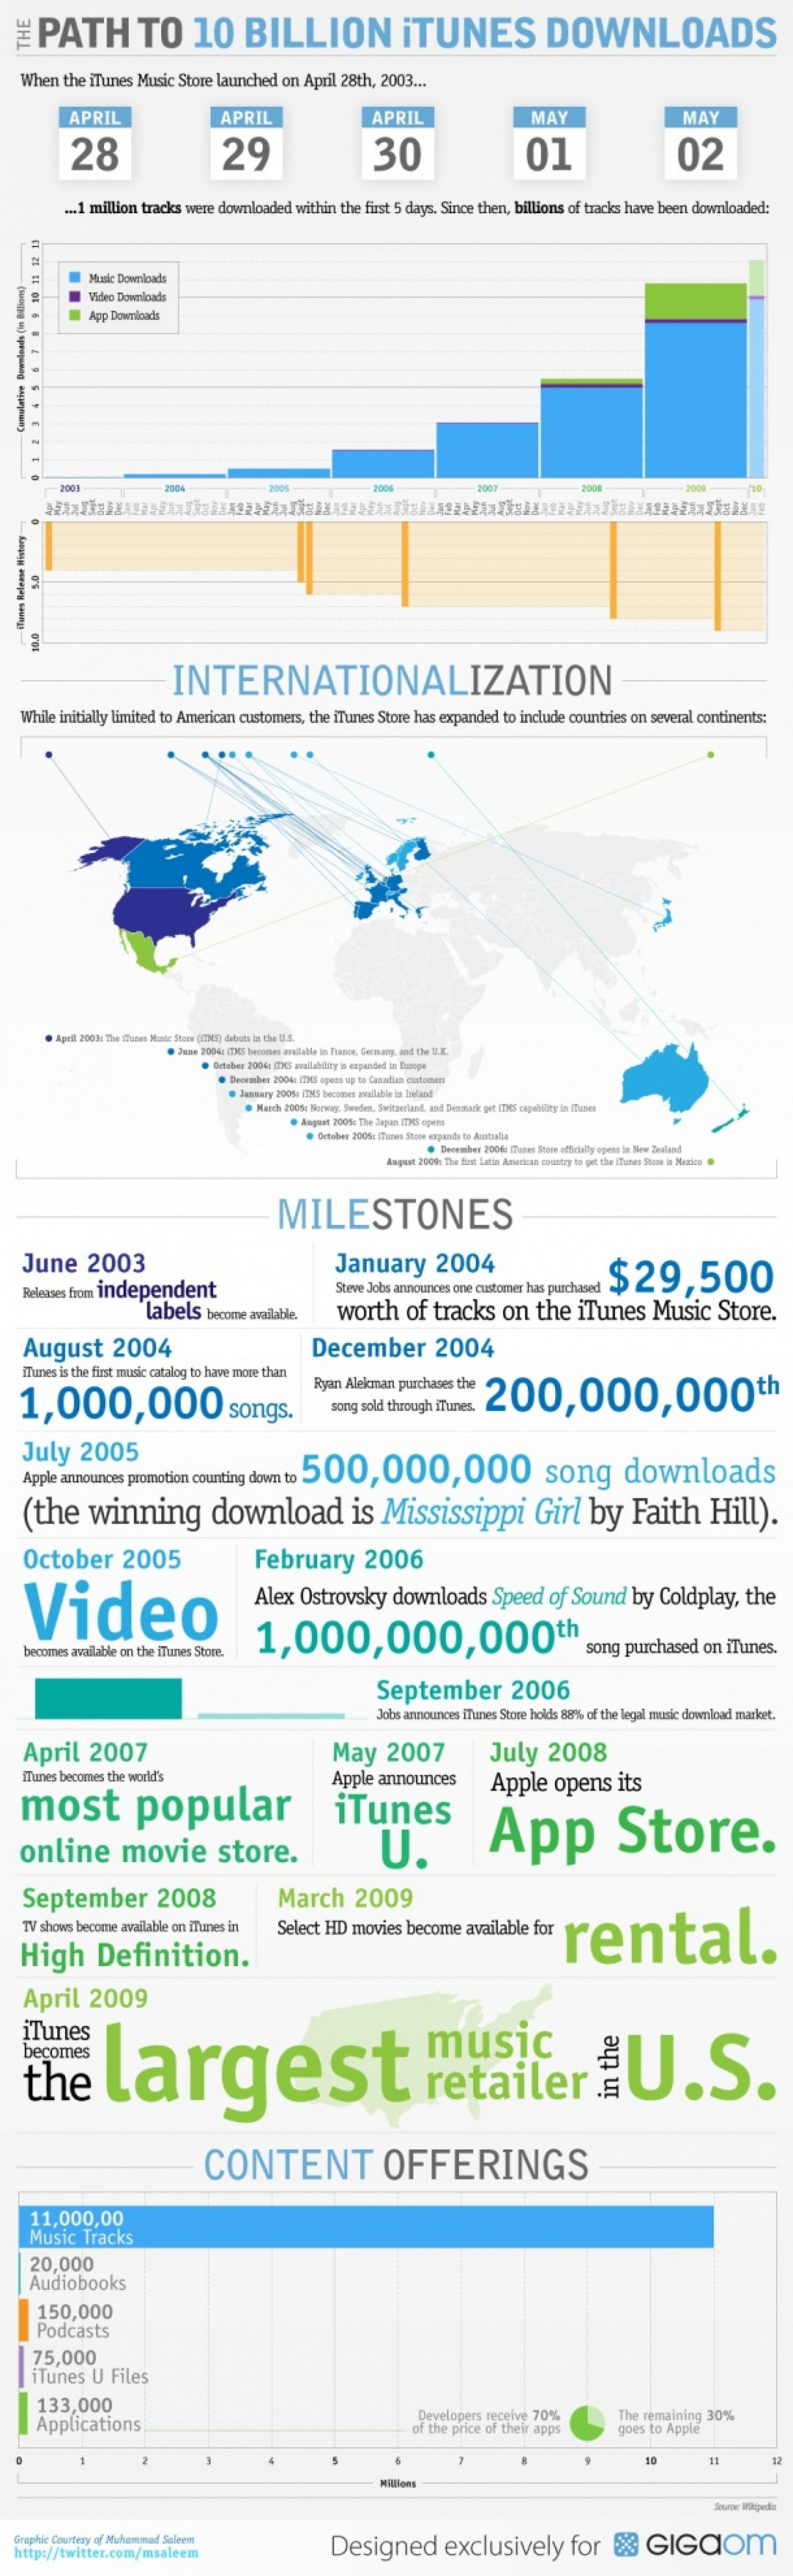 The Path to 10 Billion iTunes Downloads Infographic